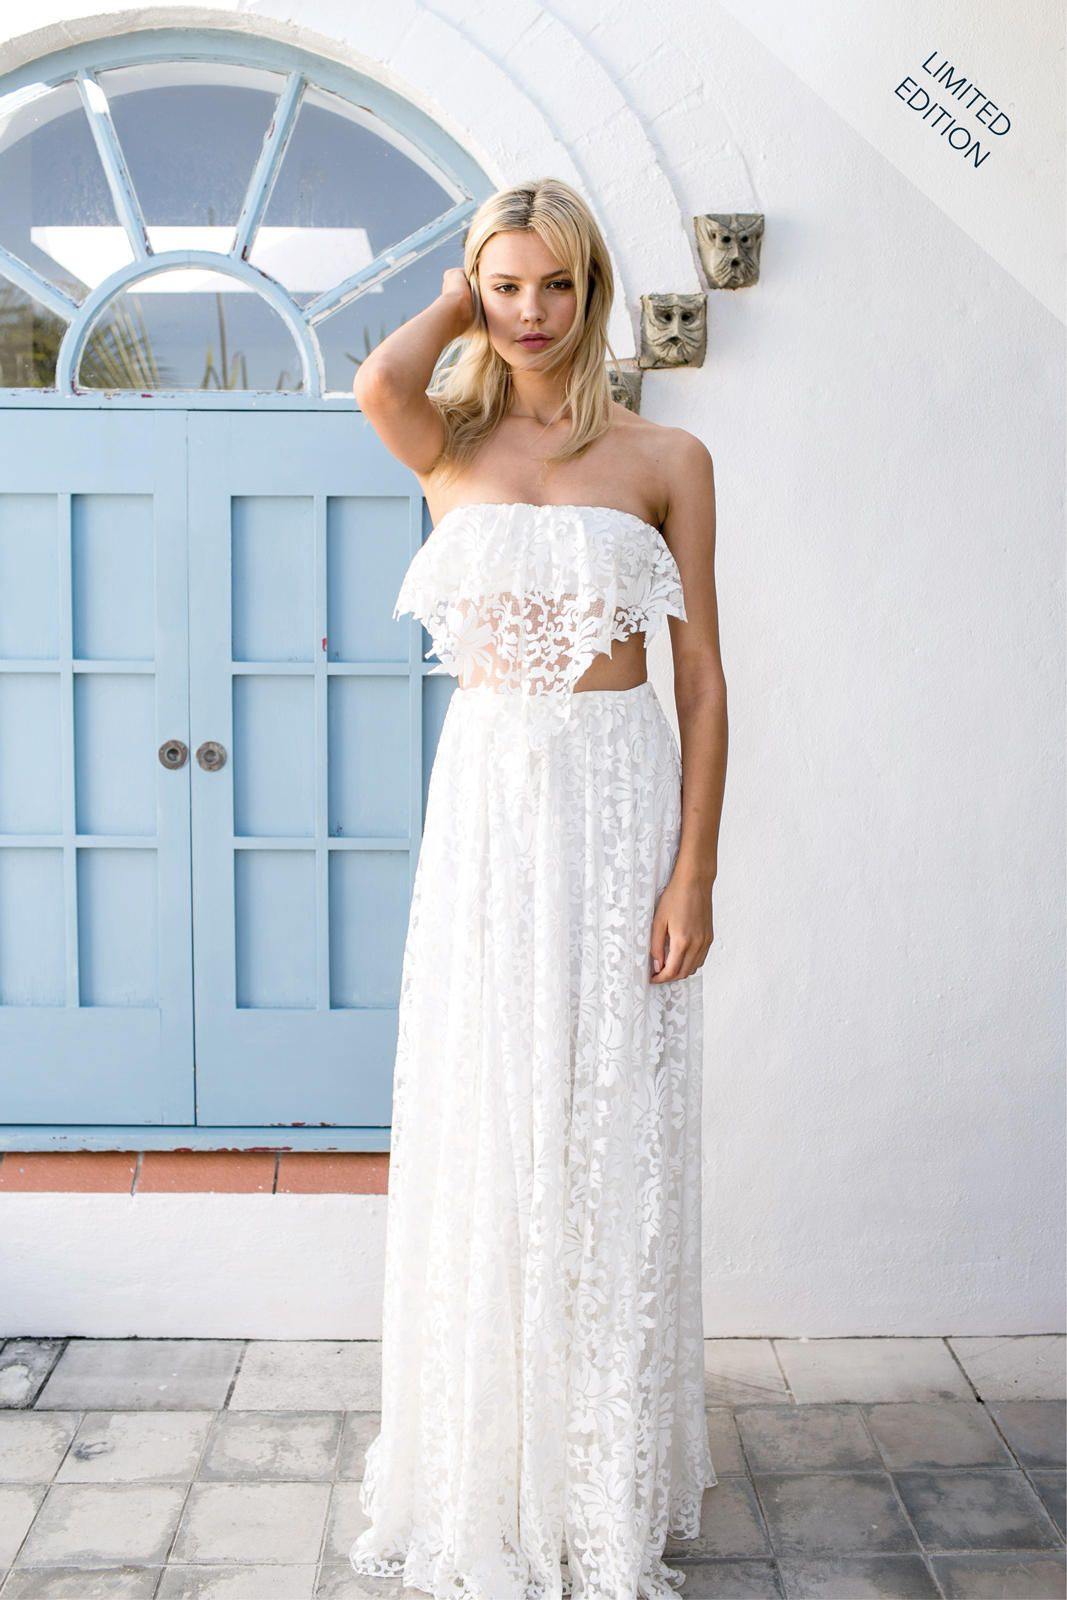 Untraditional wedding dresses  The Limited Edition Lola is the perfect lace ivory maxi set